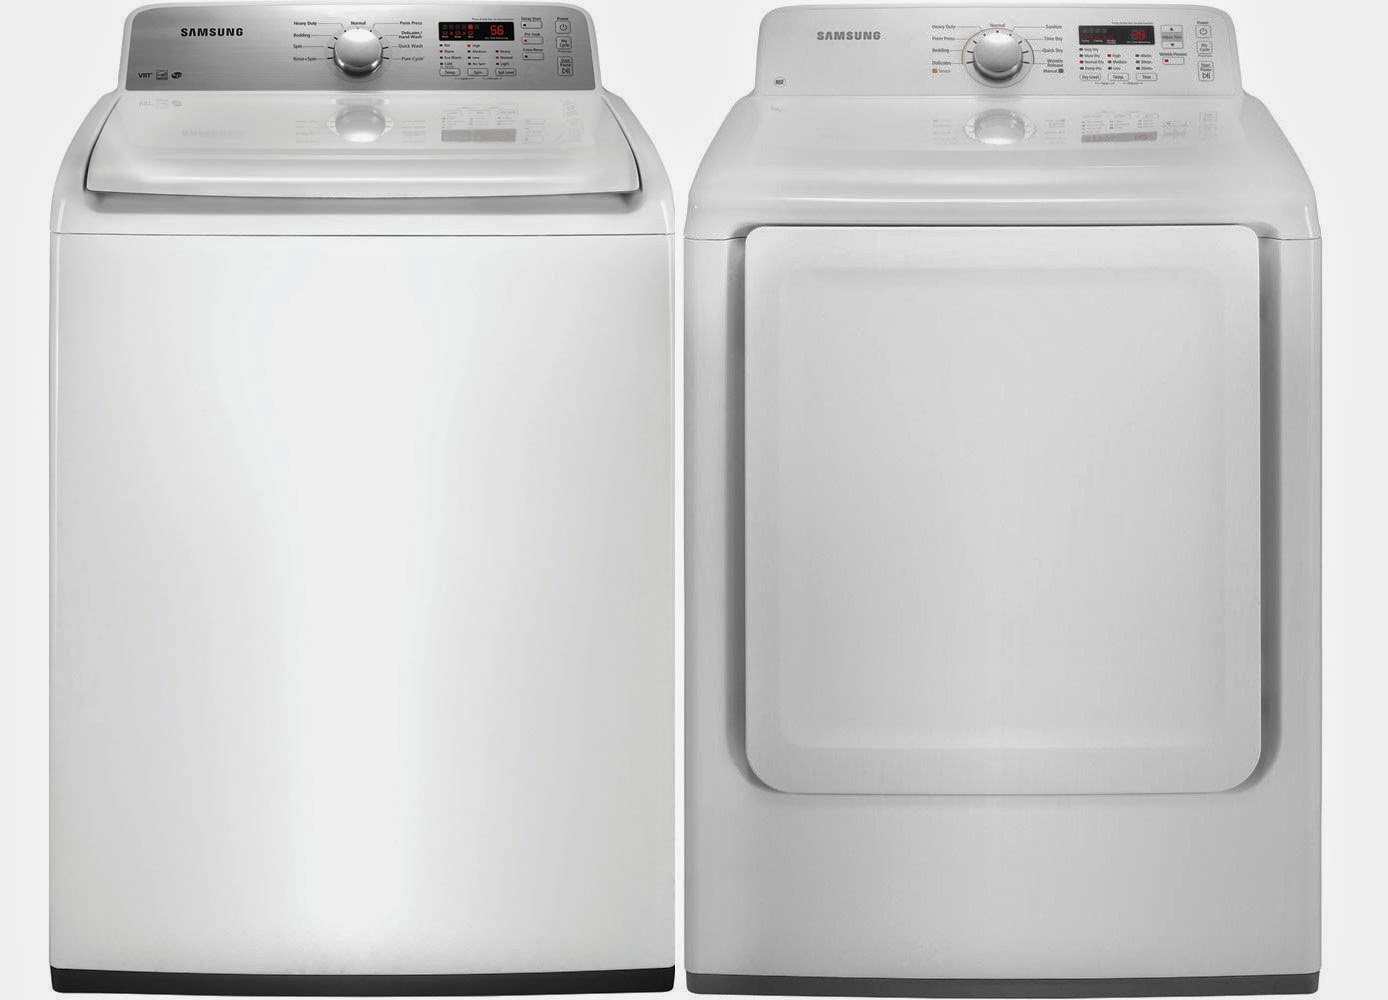 The best top load washer on the market - Samsung White Top Load Electric Laundry Sets